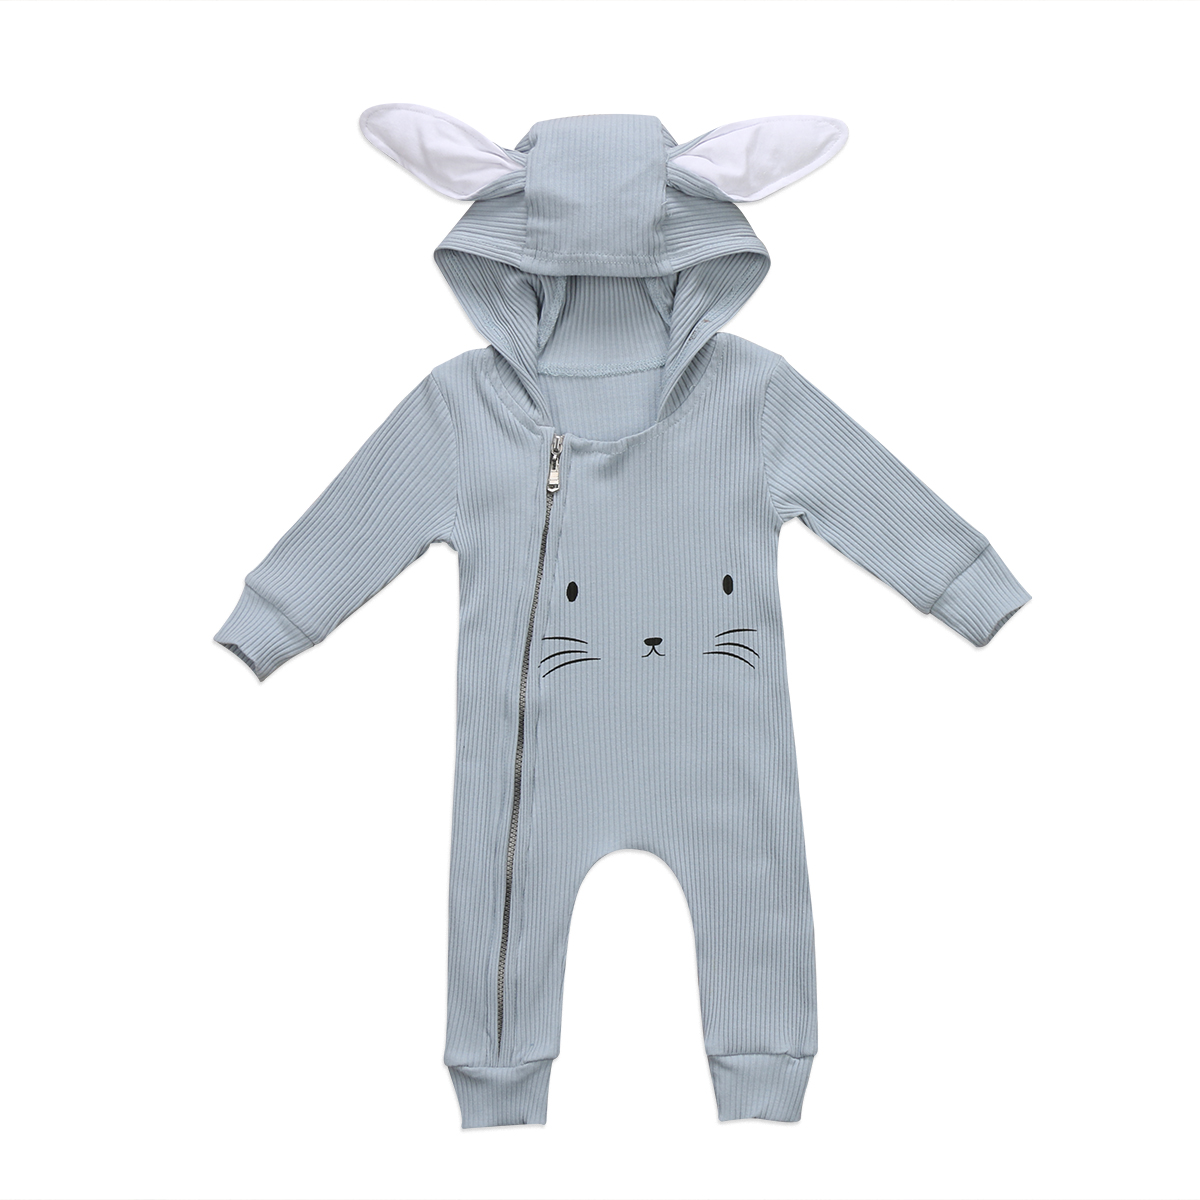 Pudcoco Newborn Kids Baby Girls Boys Ears Hooded Romper Zipper Knitted Jumpsuit Cute Animal Long Sleeve Clothes One-Piece pudcoco newborn infant baby girls clothes short sleeve floral romper headband summer cute cotton one piece clothes